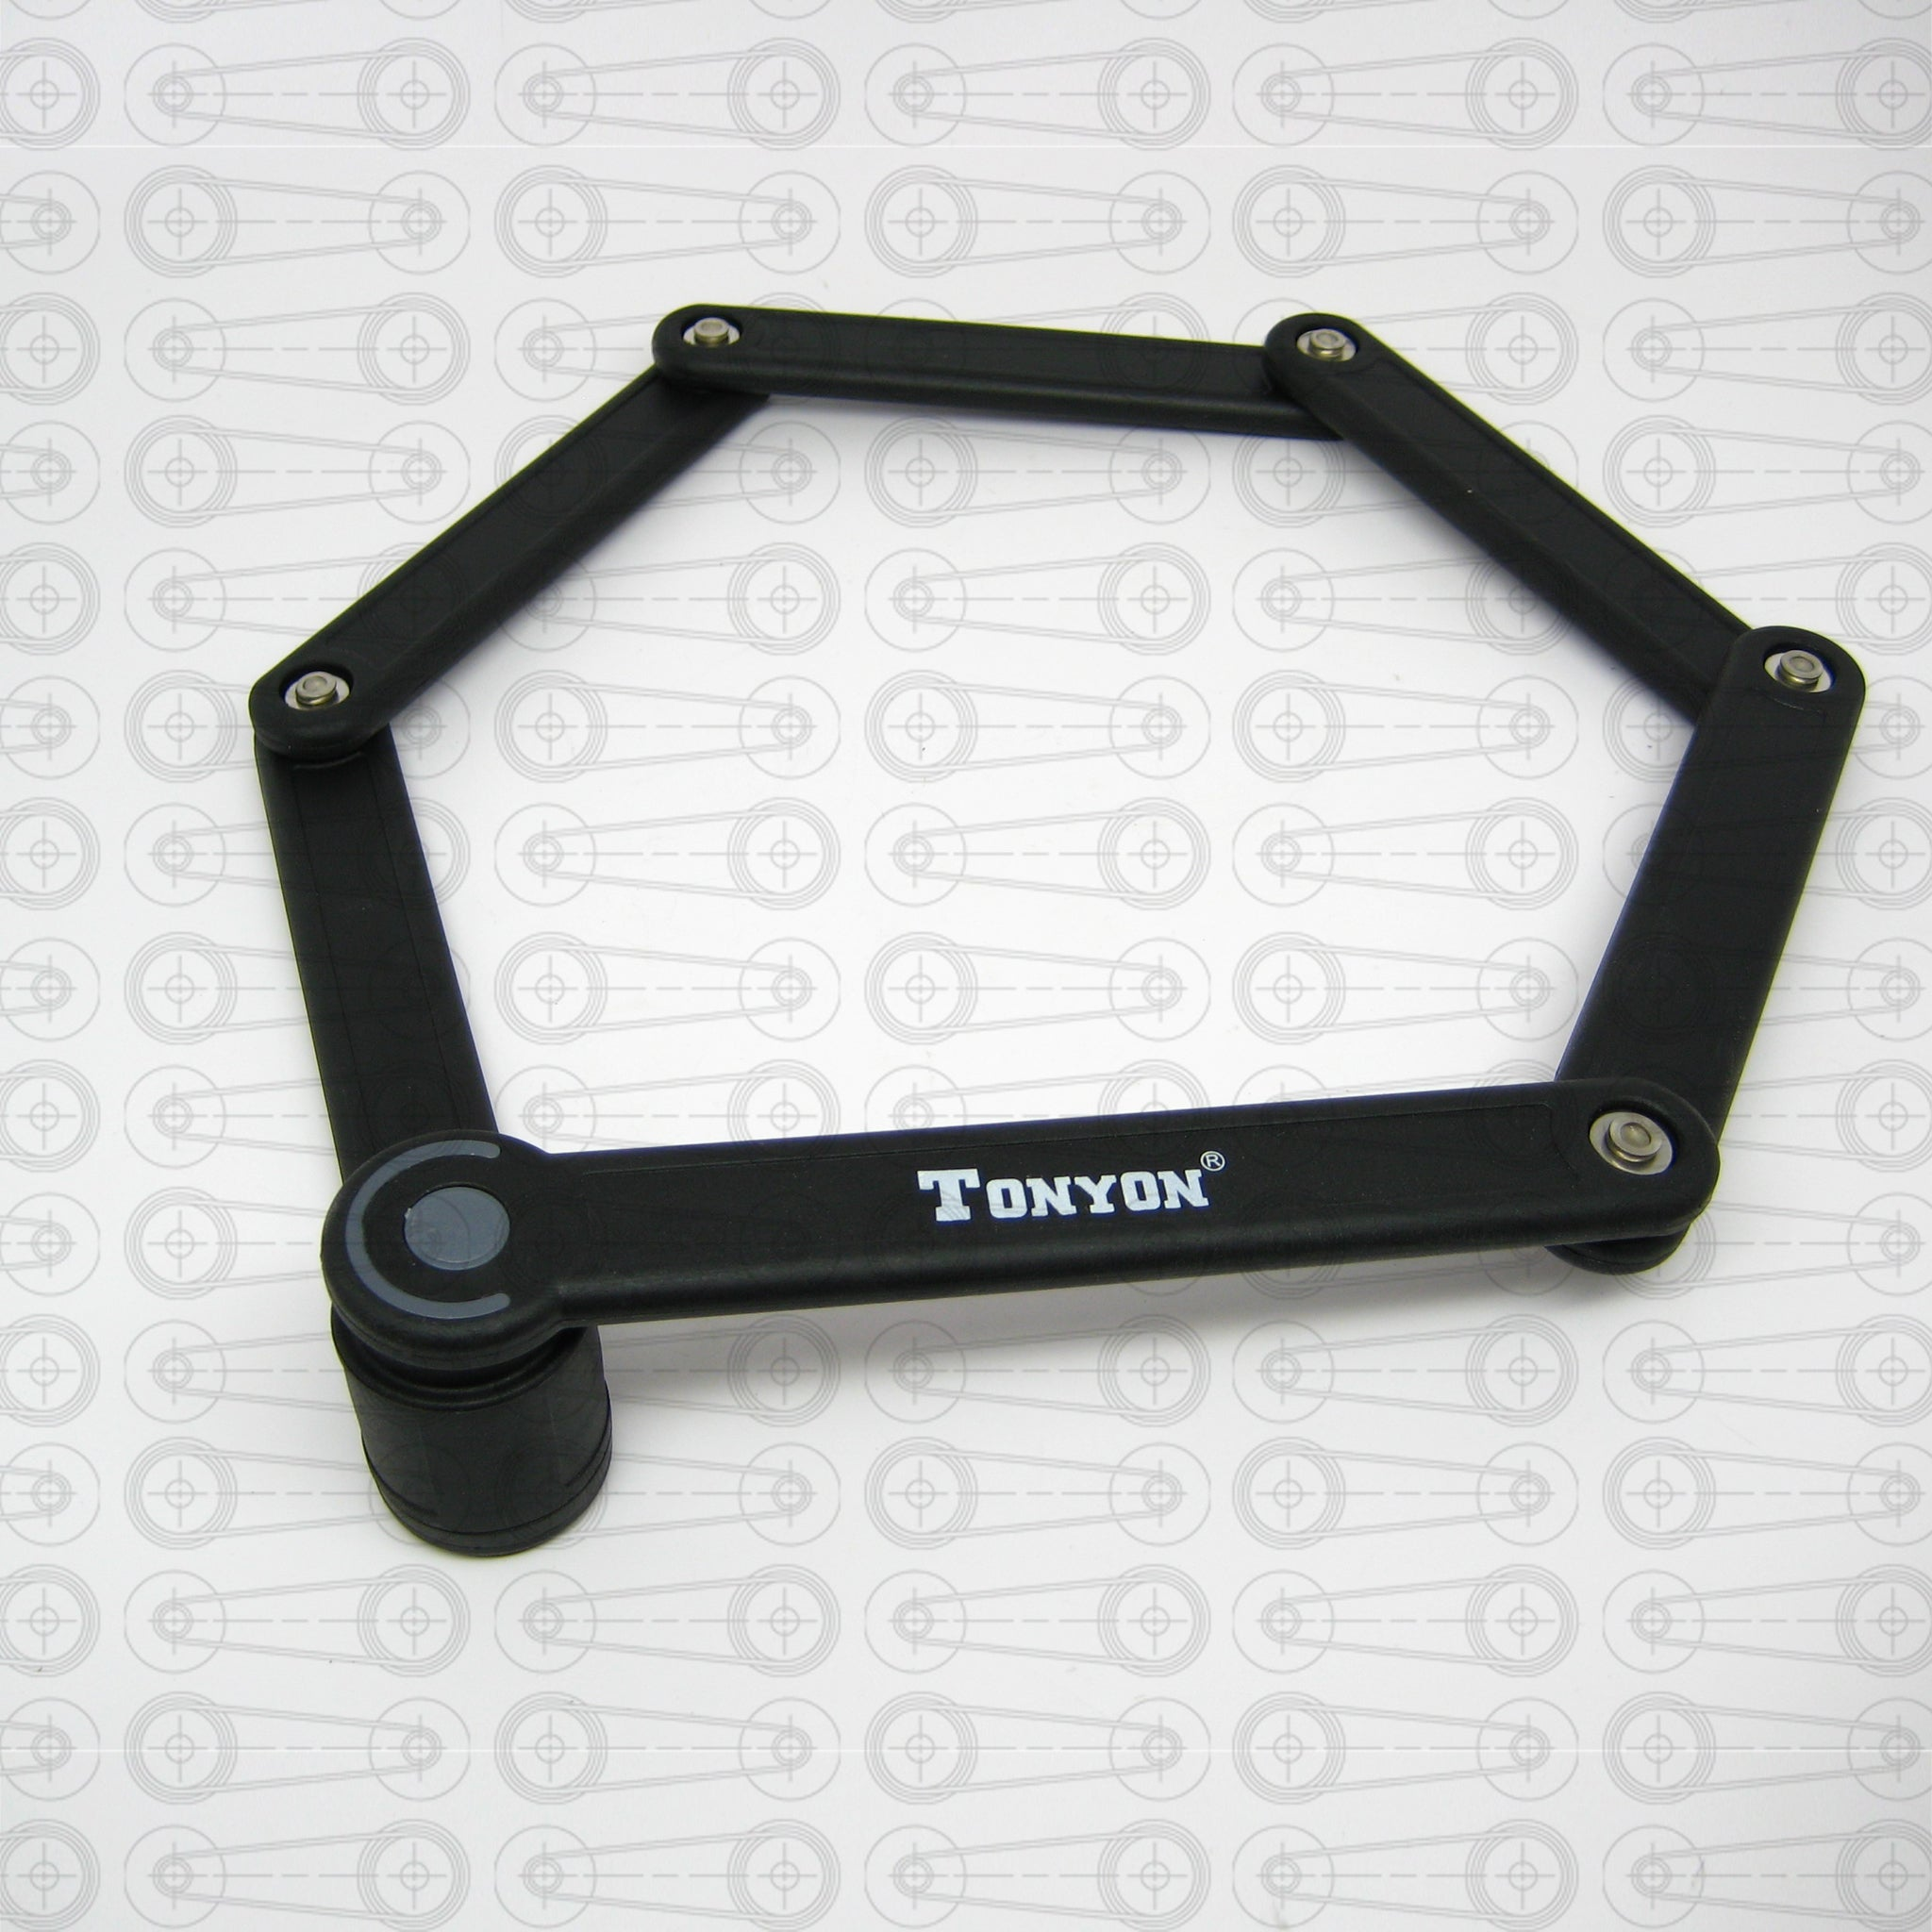 TONYON - FOLDING LOCK (Universal)